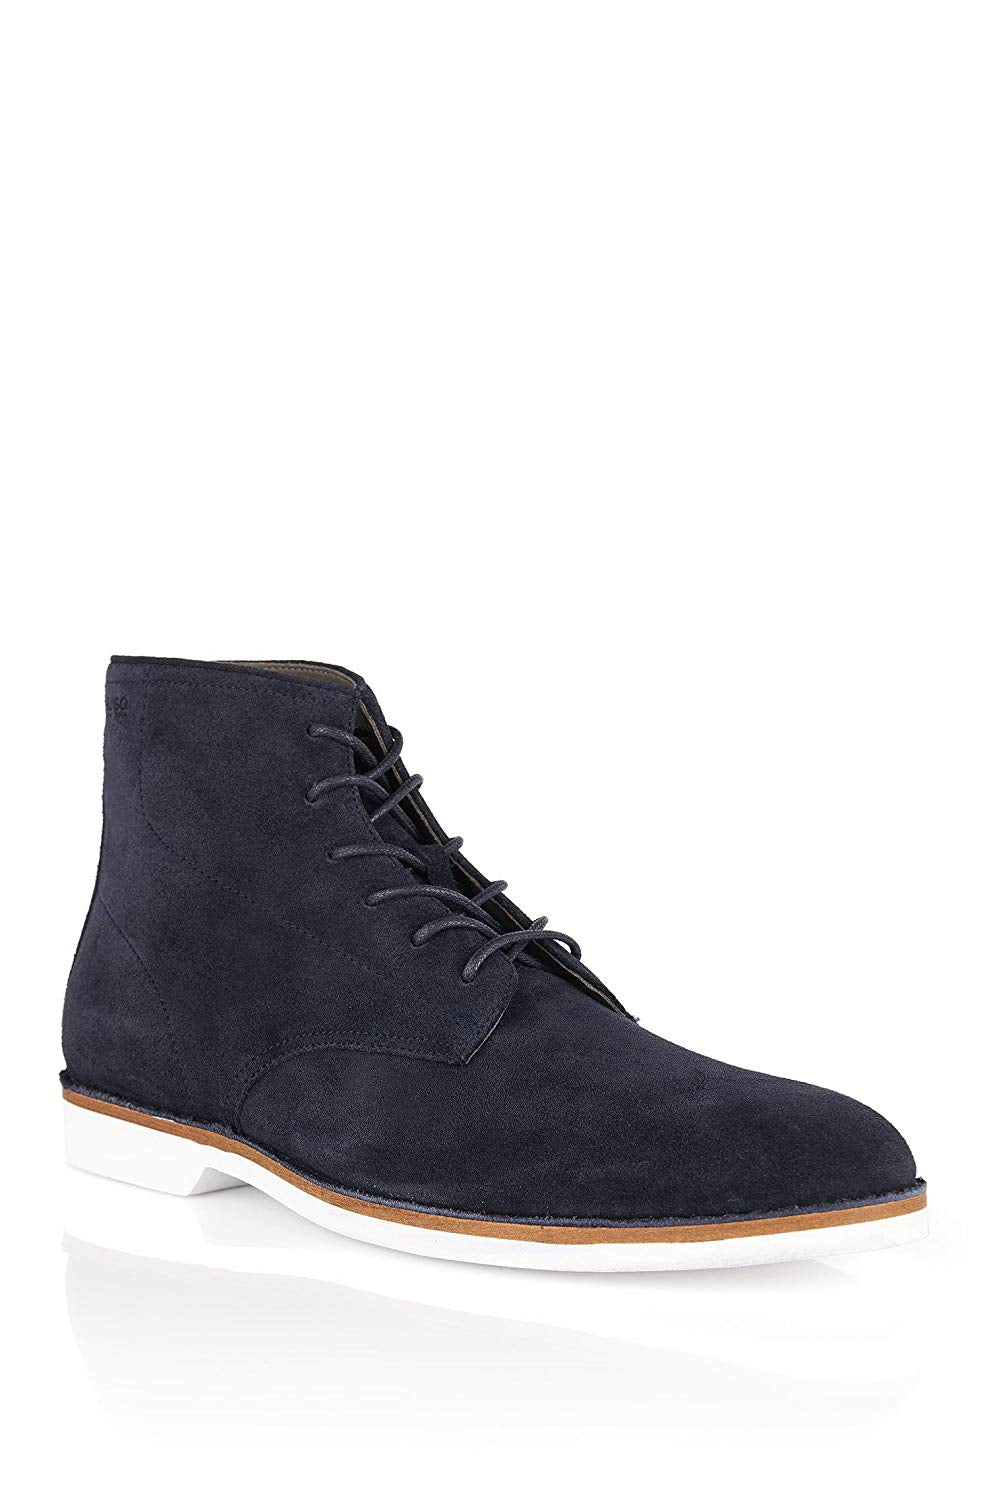 Hugo Boss Mens Bootie Reberbo 50305663-401 in Dark Blue